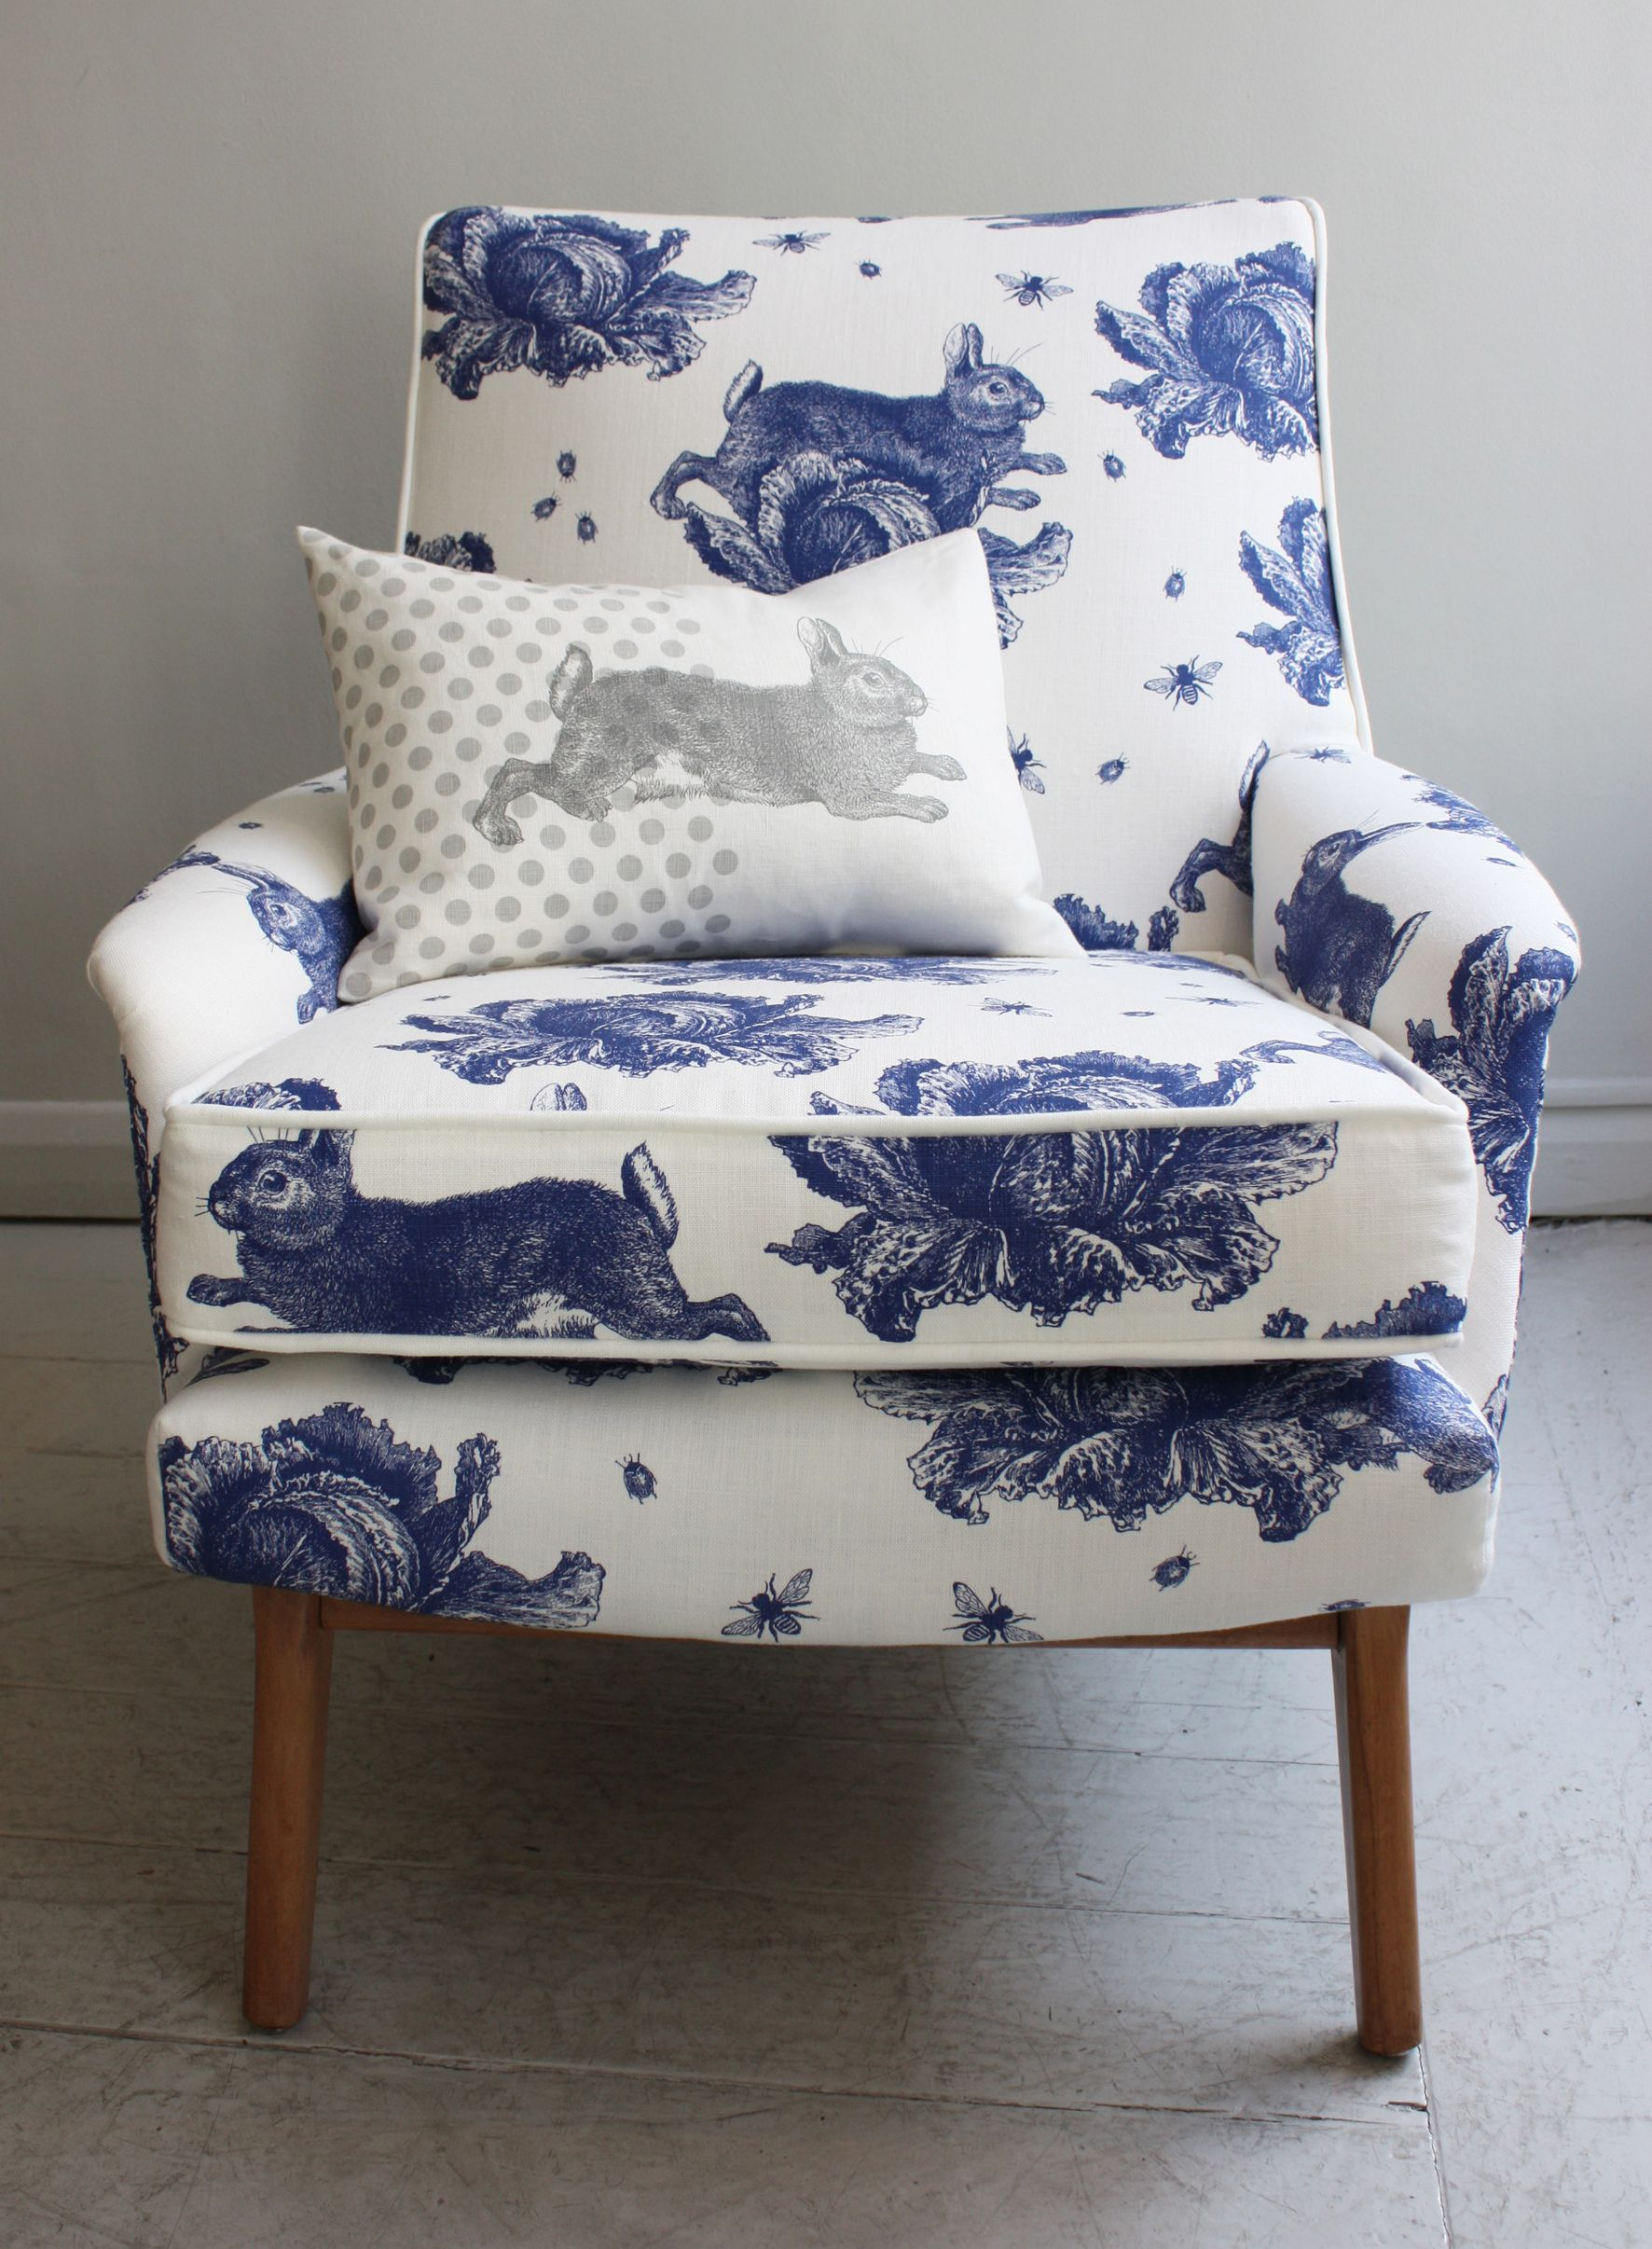 blue and white upholstered chairs used party for sale upholstery interior bedrooms pinte more